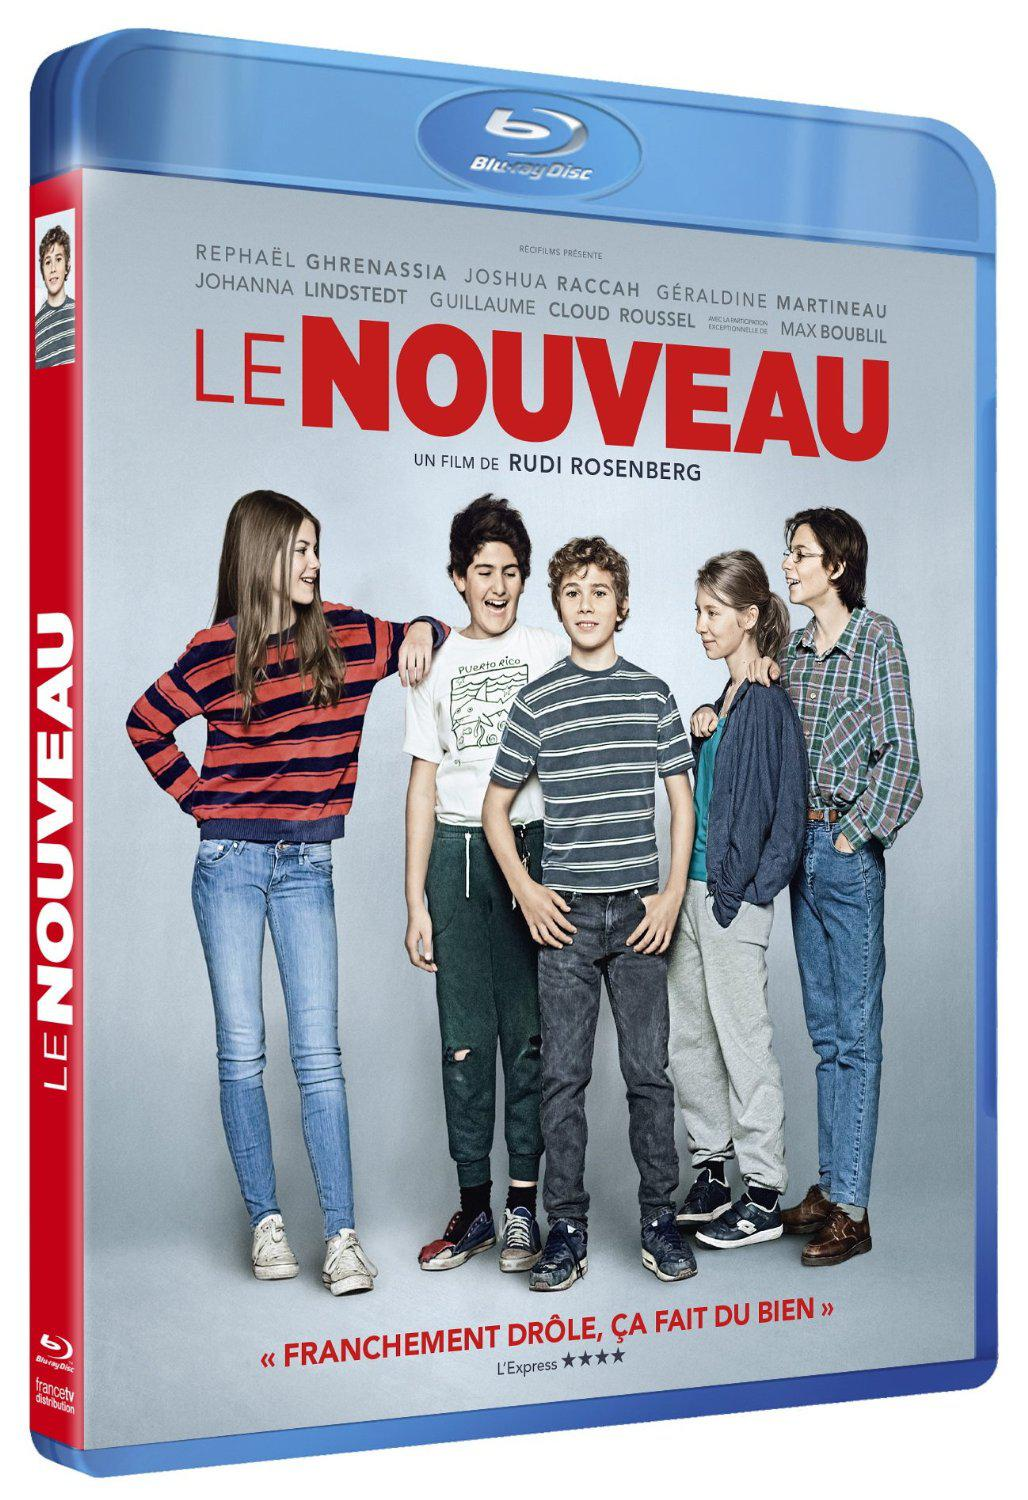 Le Nouveau [BLURAY 1080p | FRENCH ]